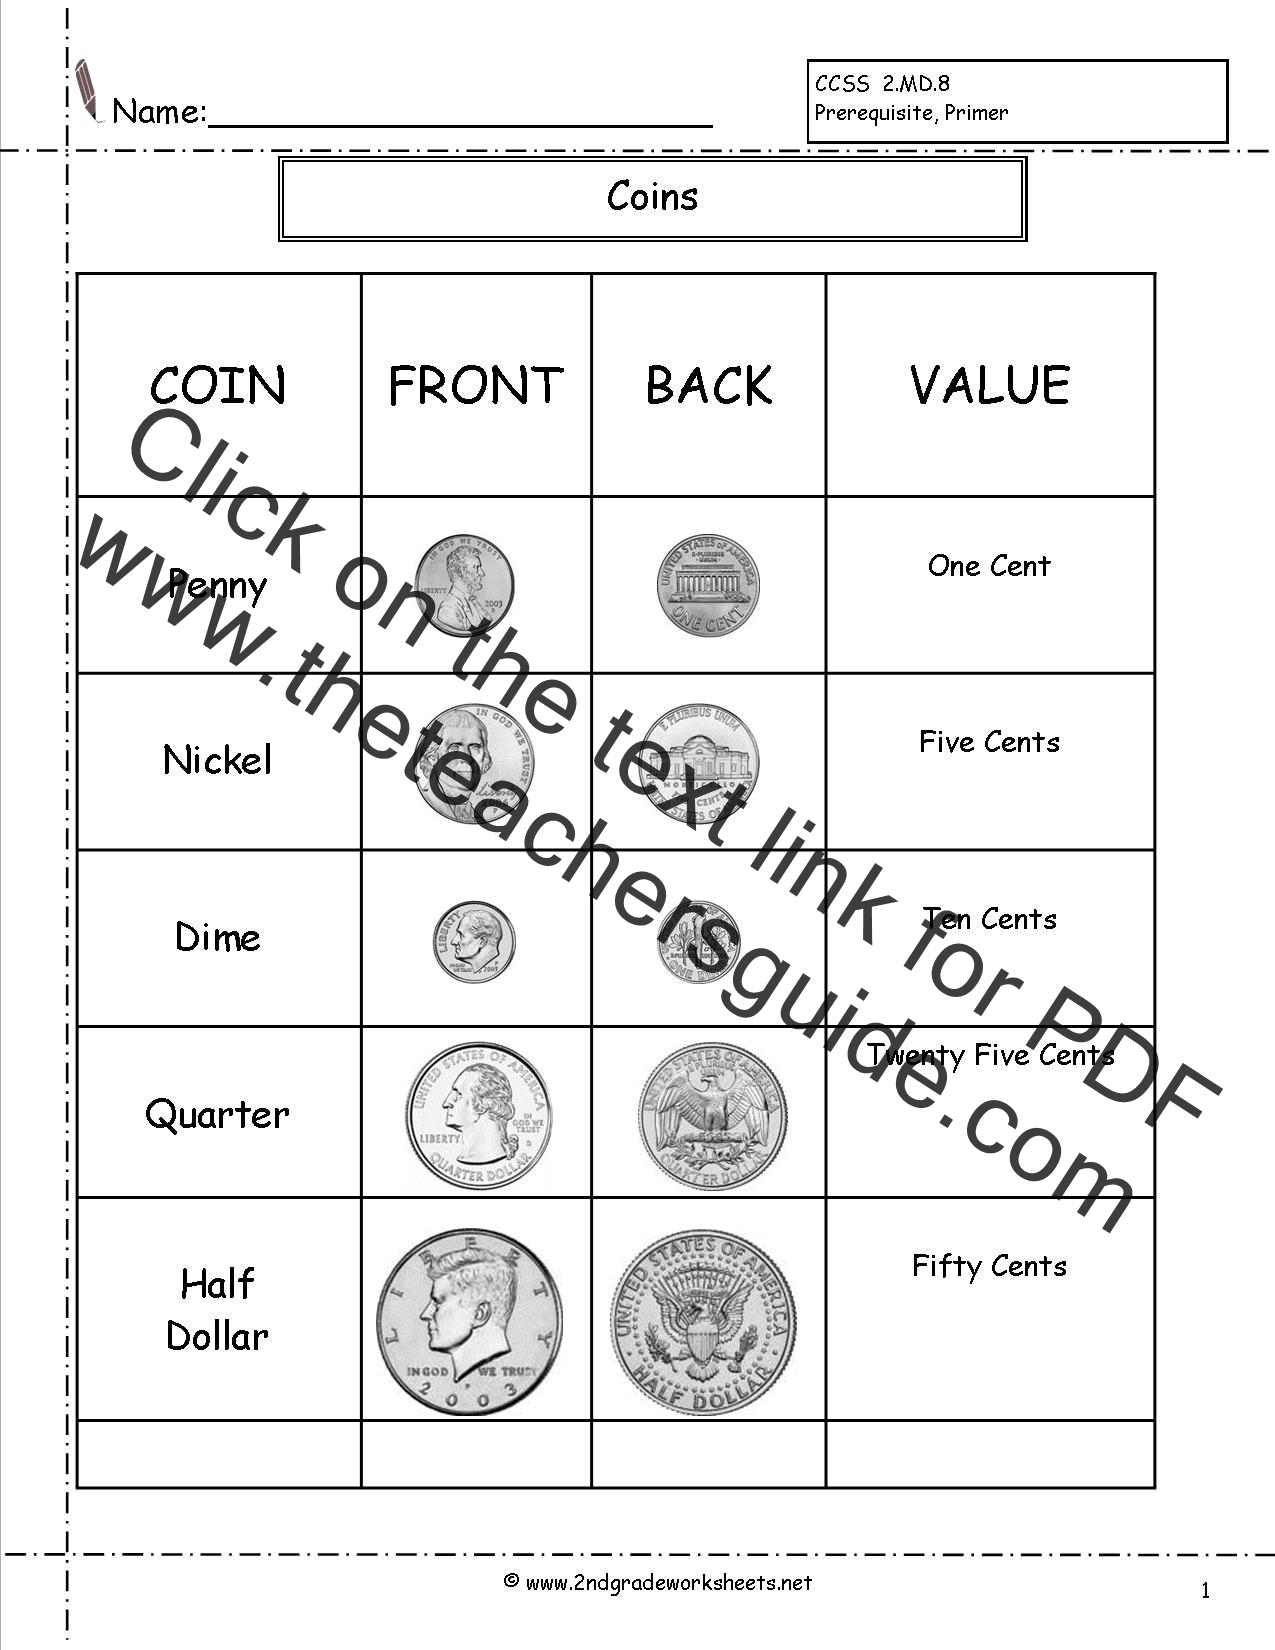 Worksheets Coin Counting Worksheets counting coins and money worksheets printouts worksheet